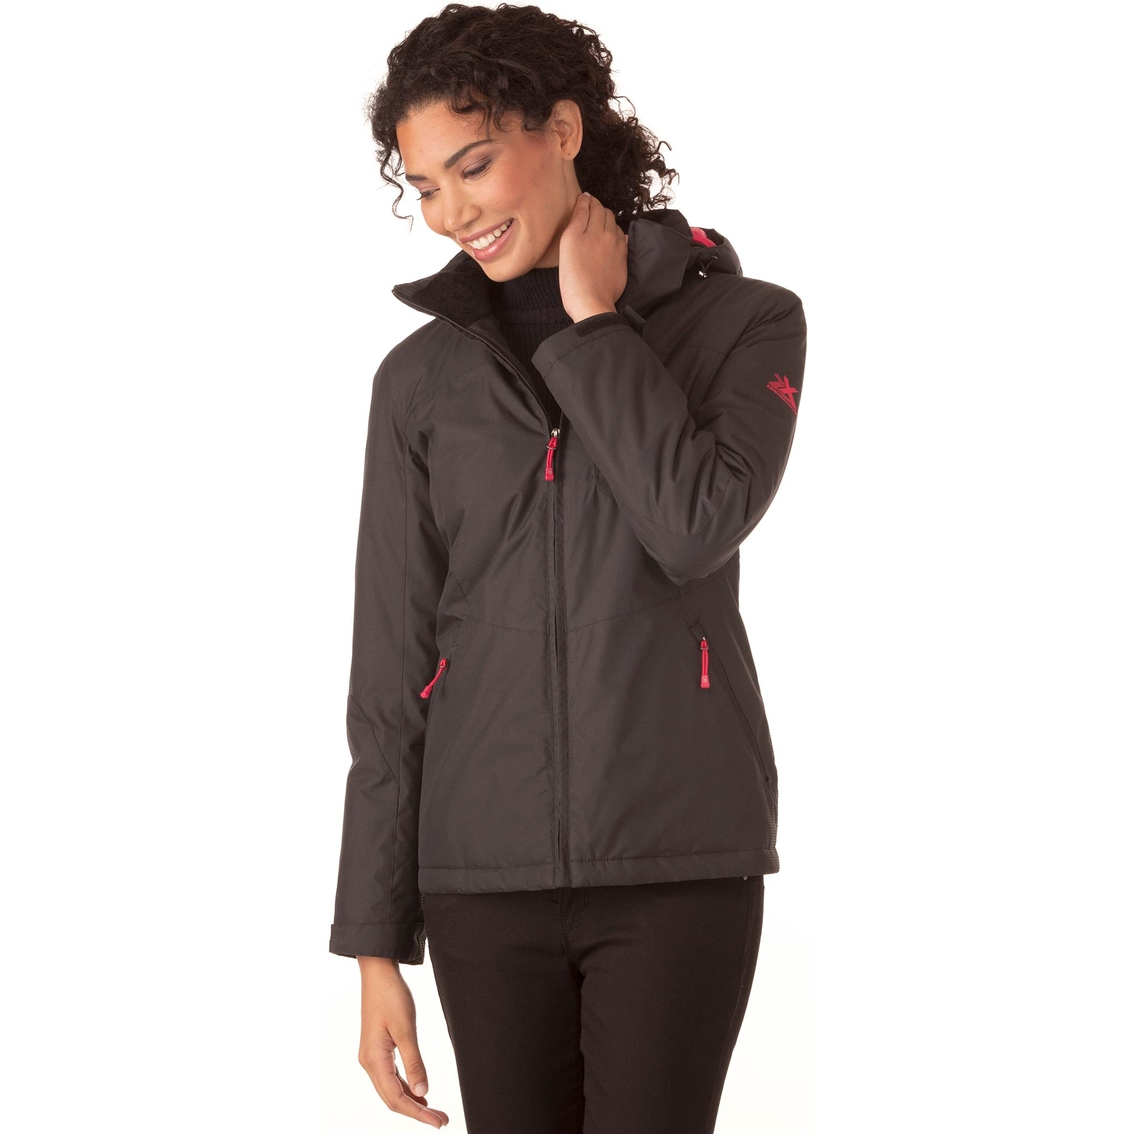 d2176d1c641f6 Zero Xposur Kelly Insulated Jacket